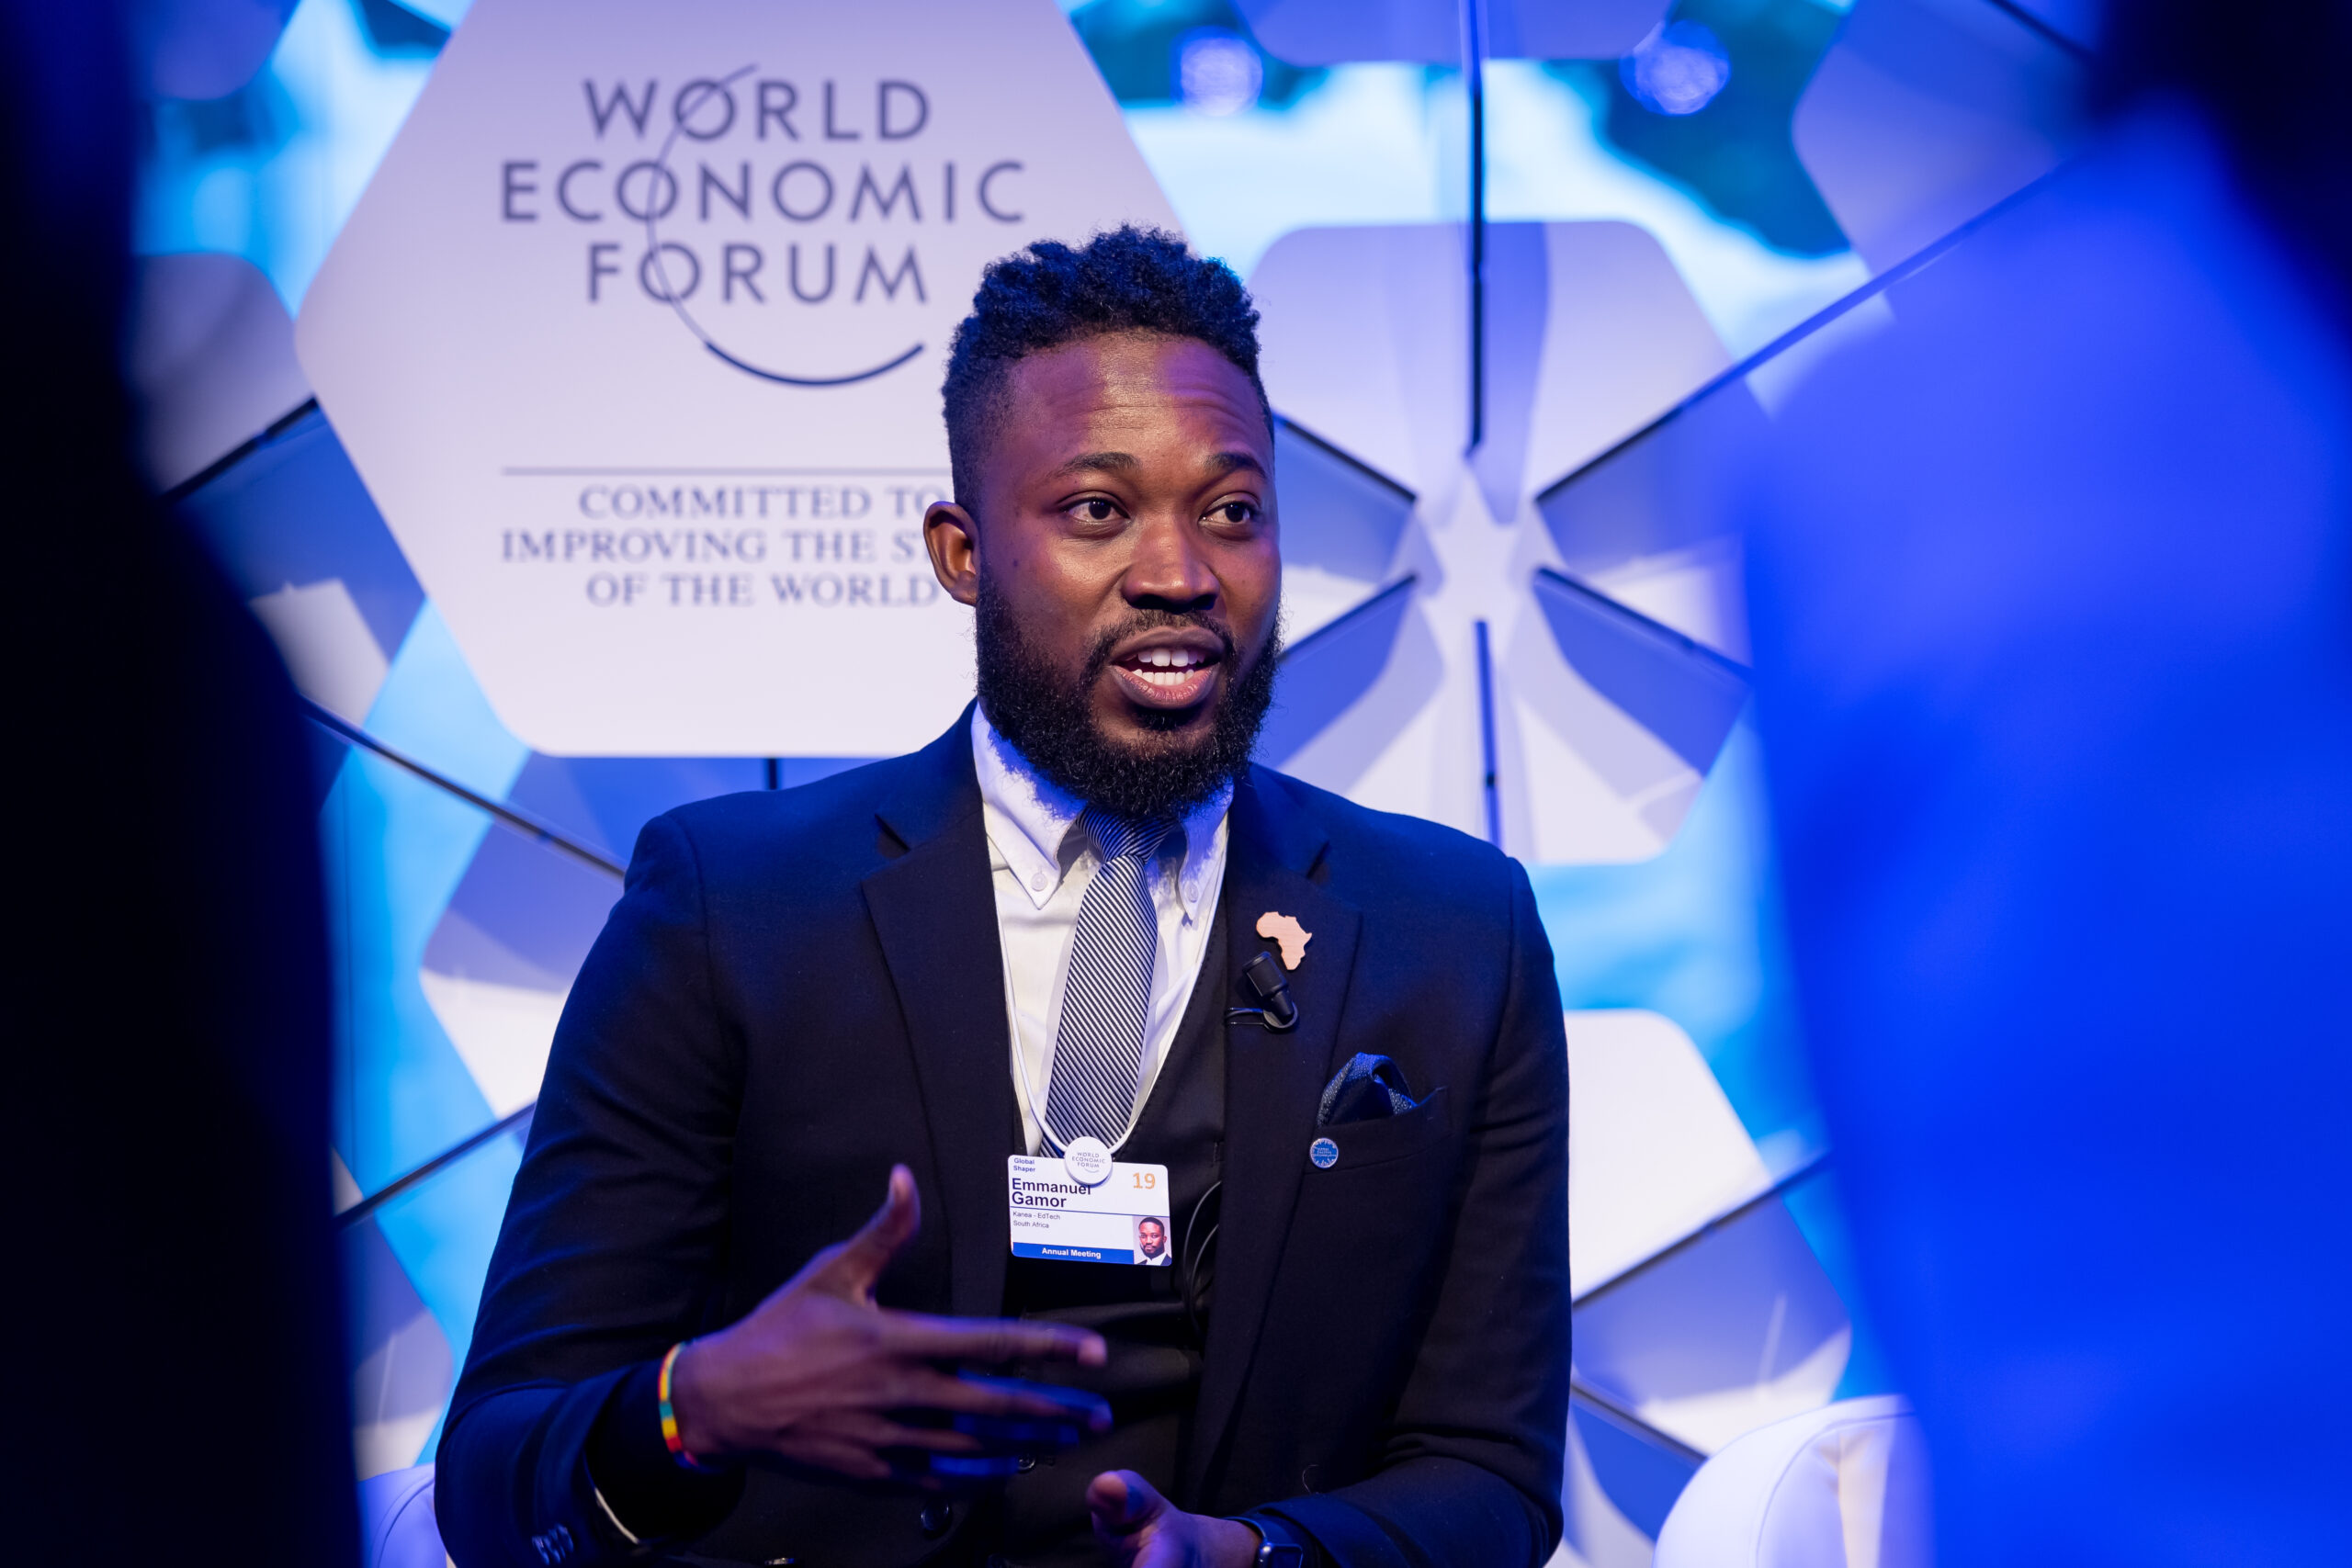 """Emmanuel Gamor, Entrepreneur, Kanea - EdTech, South Africa speaking during the Session """"Last-Mile Learning"""" at the Annual Meeting 2019 of the World Economic Forum in Davos, January 22, 2019.   Congress Centre - Agora.   Copyright by World Economic Forum / Sandra Blaser"""